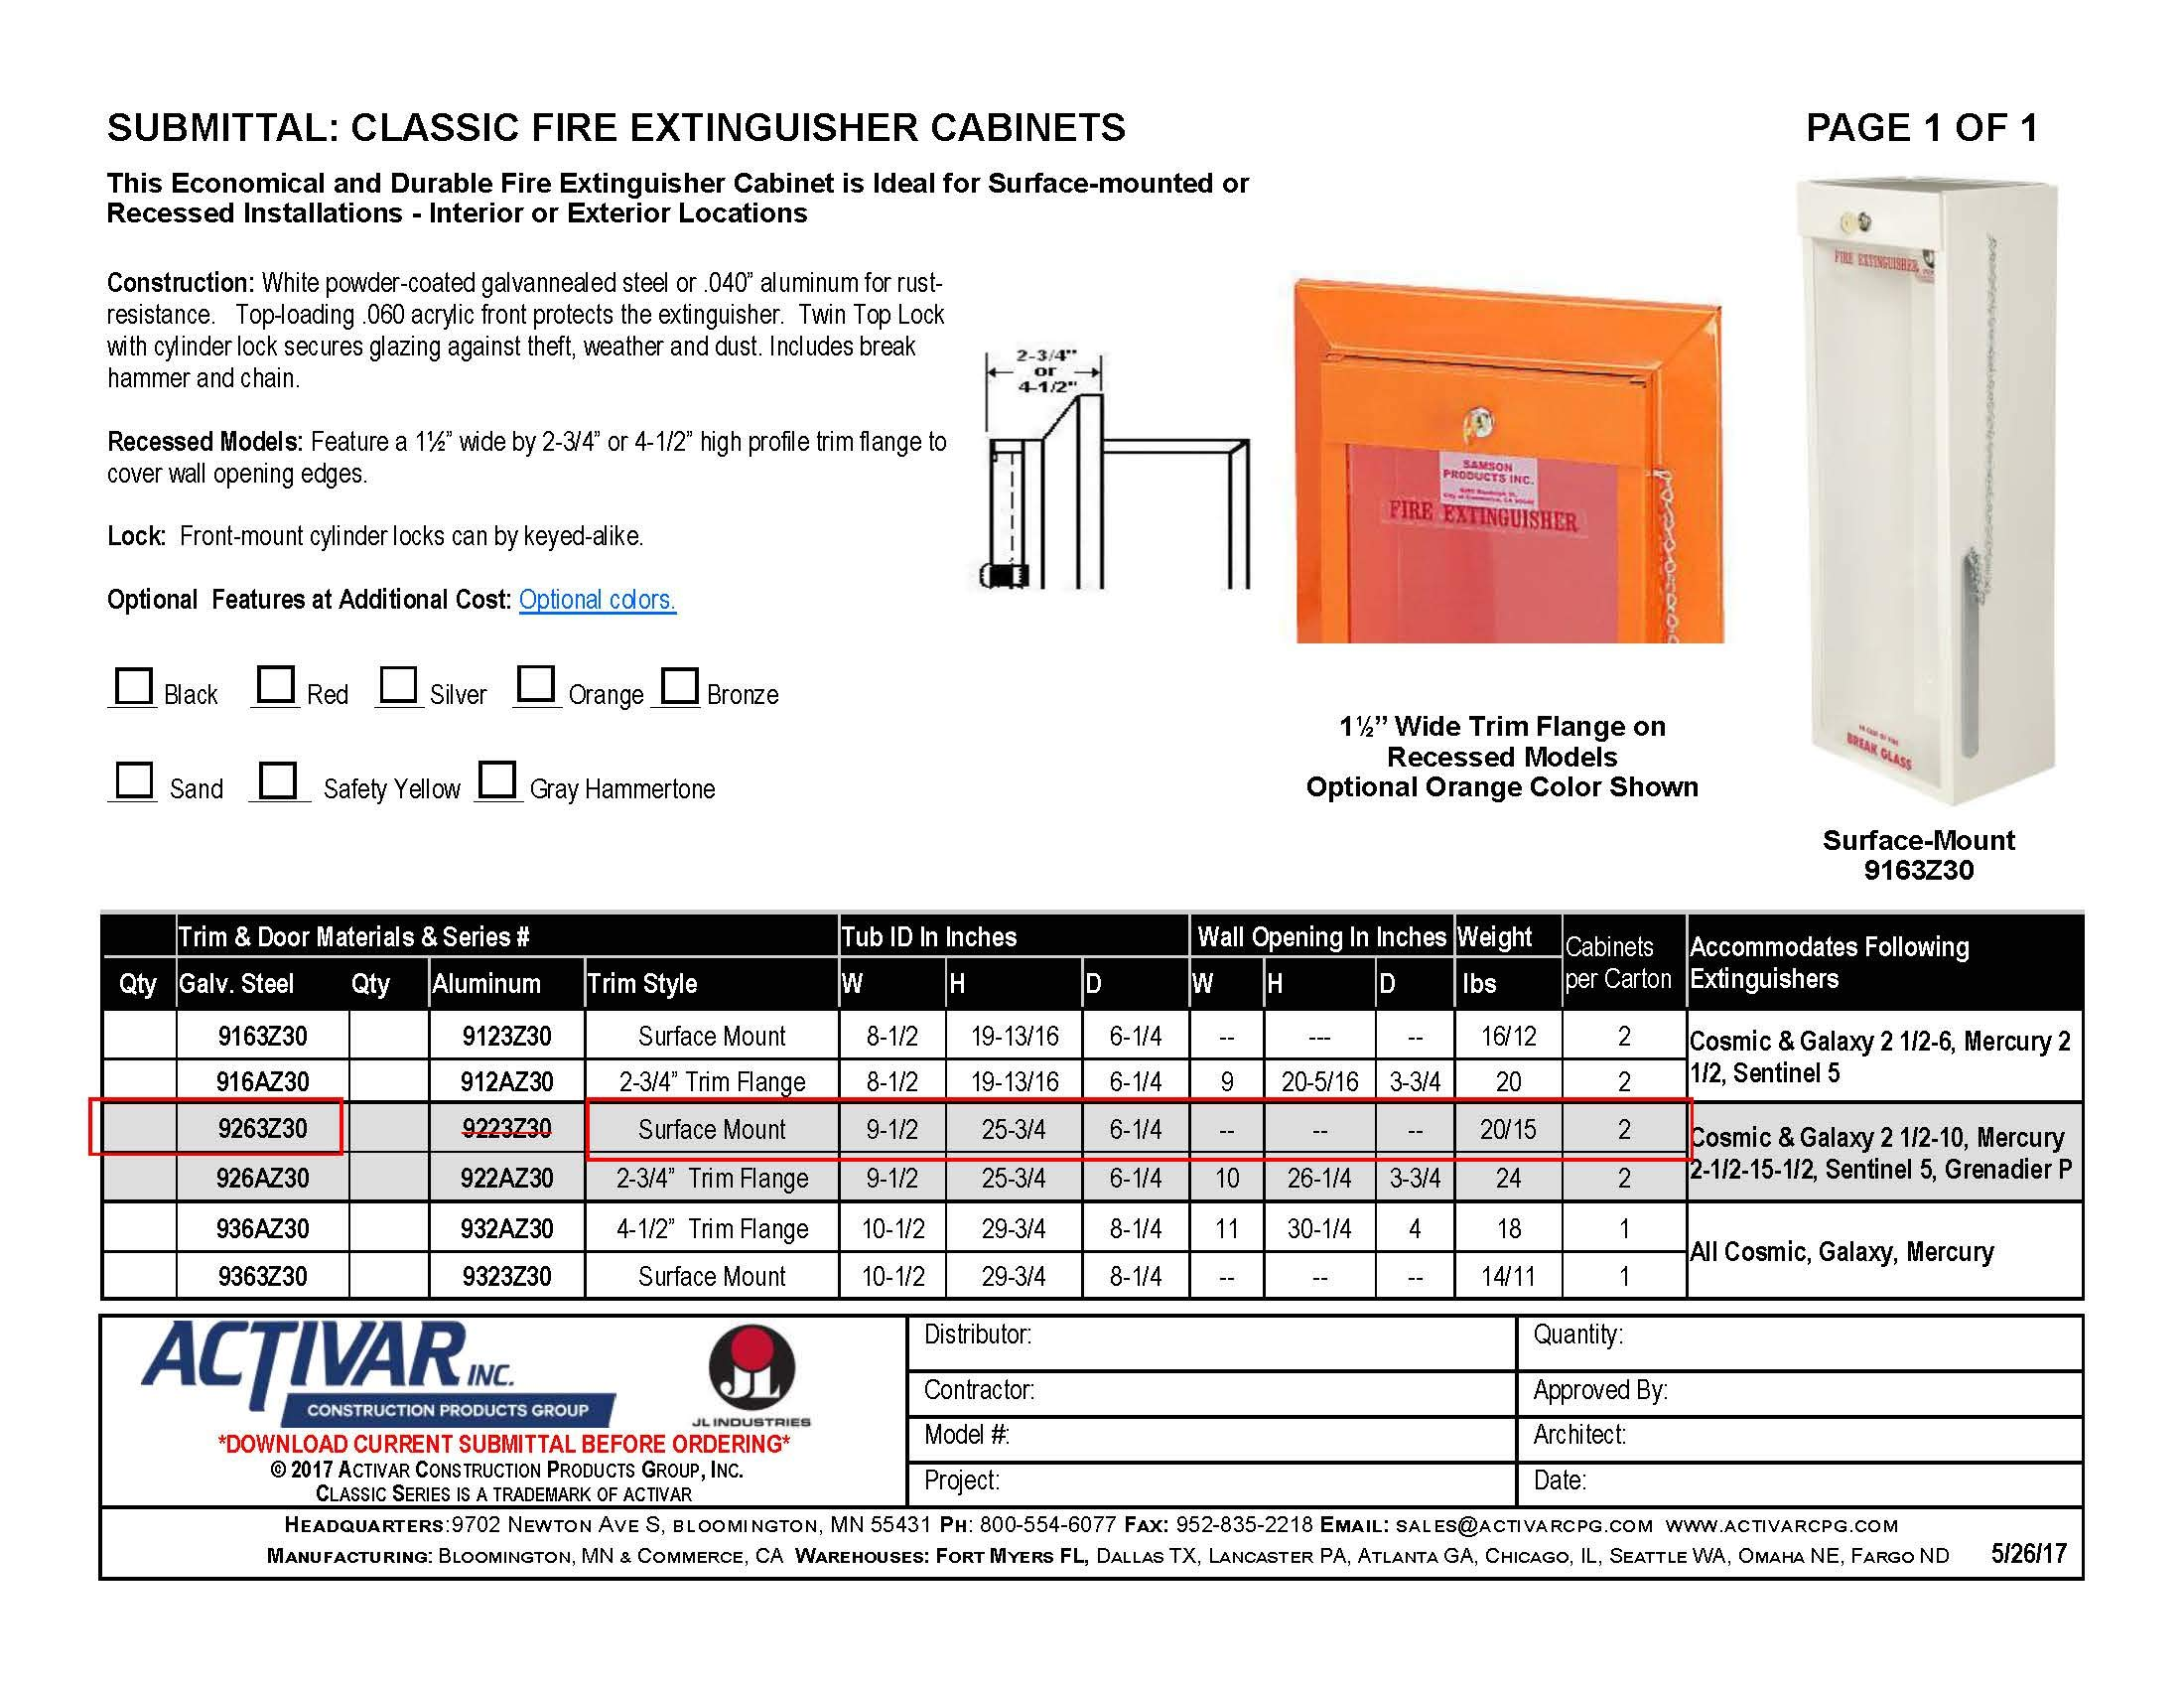 JL Classic Series 9263Z30 10-Pound Fire Extinguisher Cabinet 999G